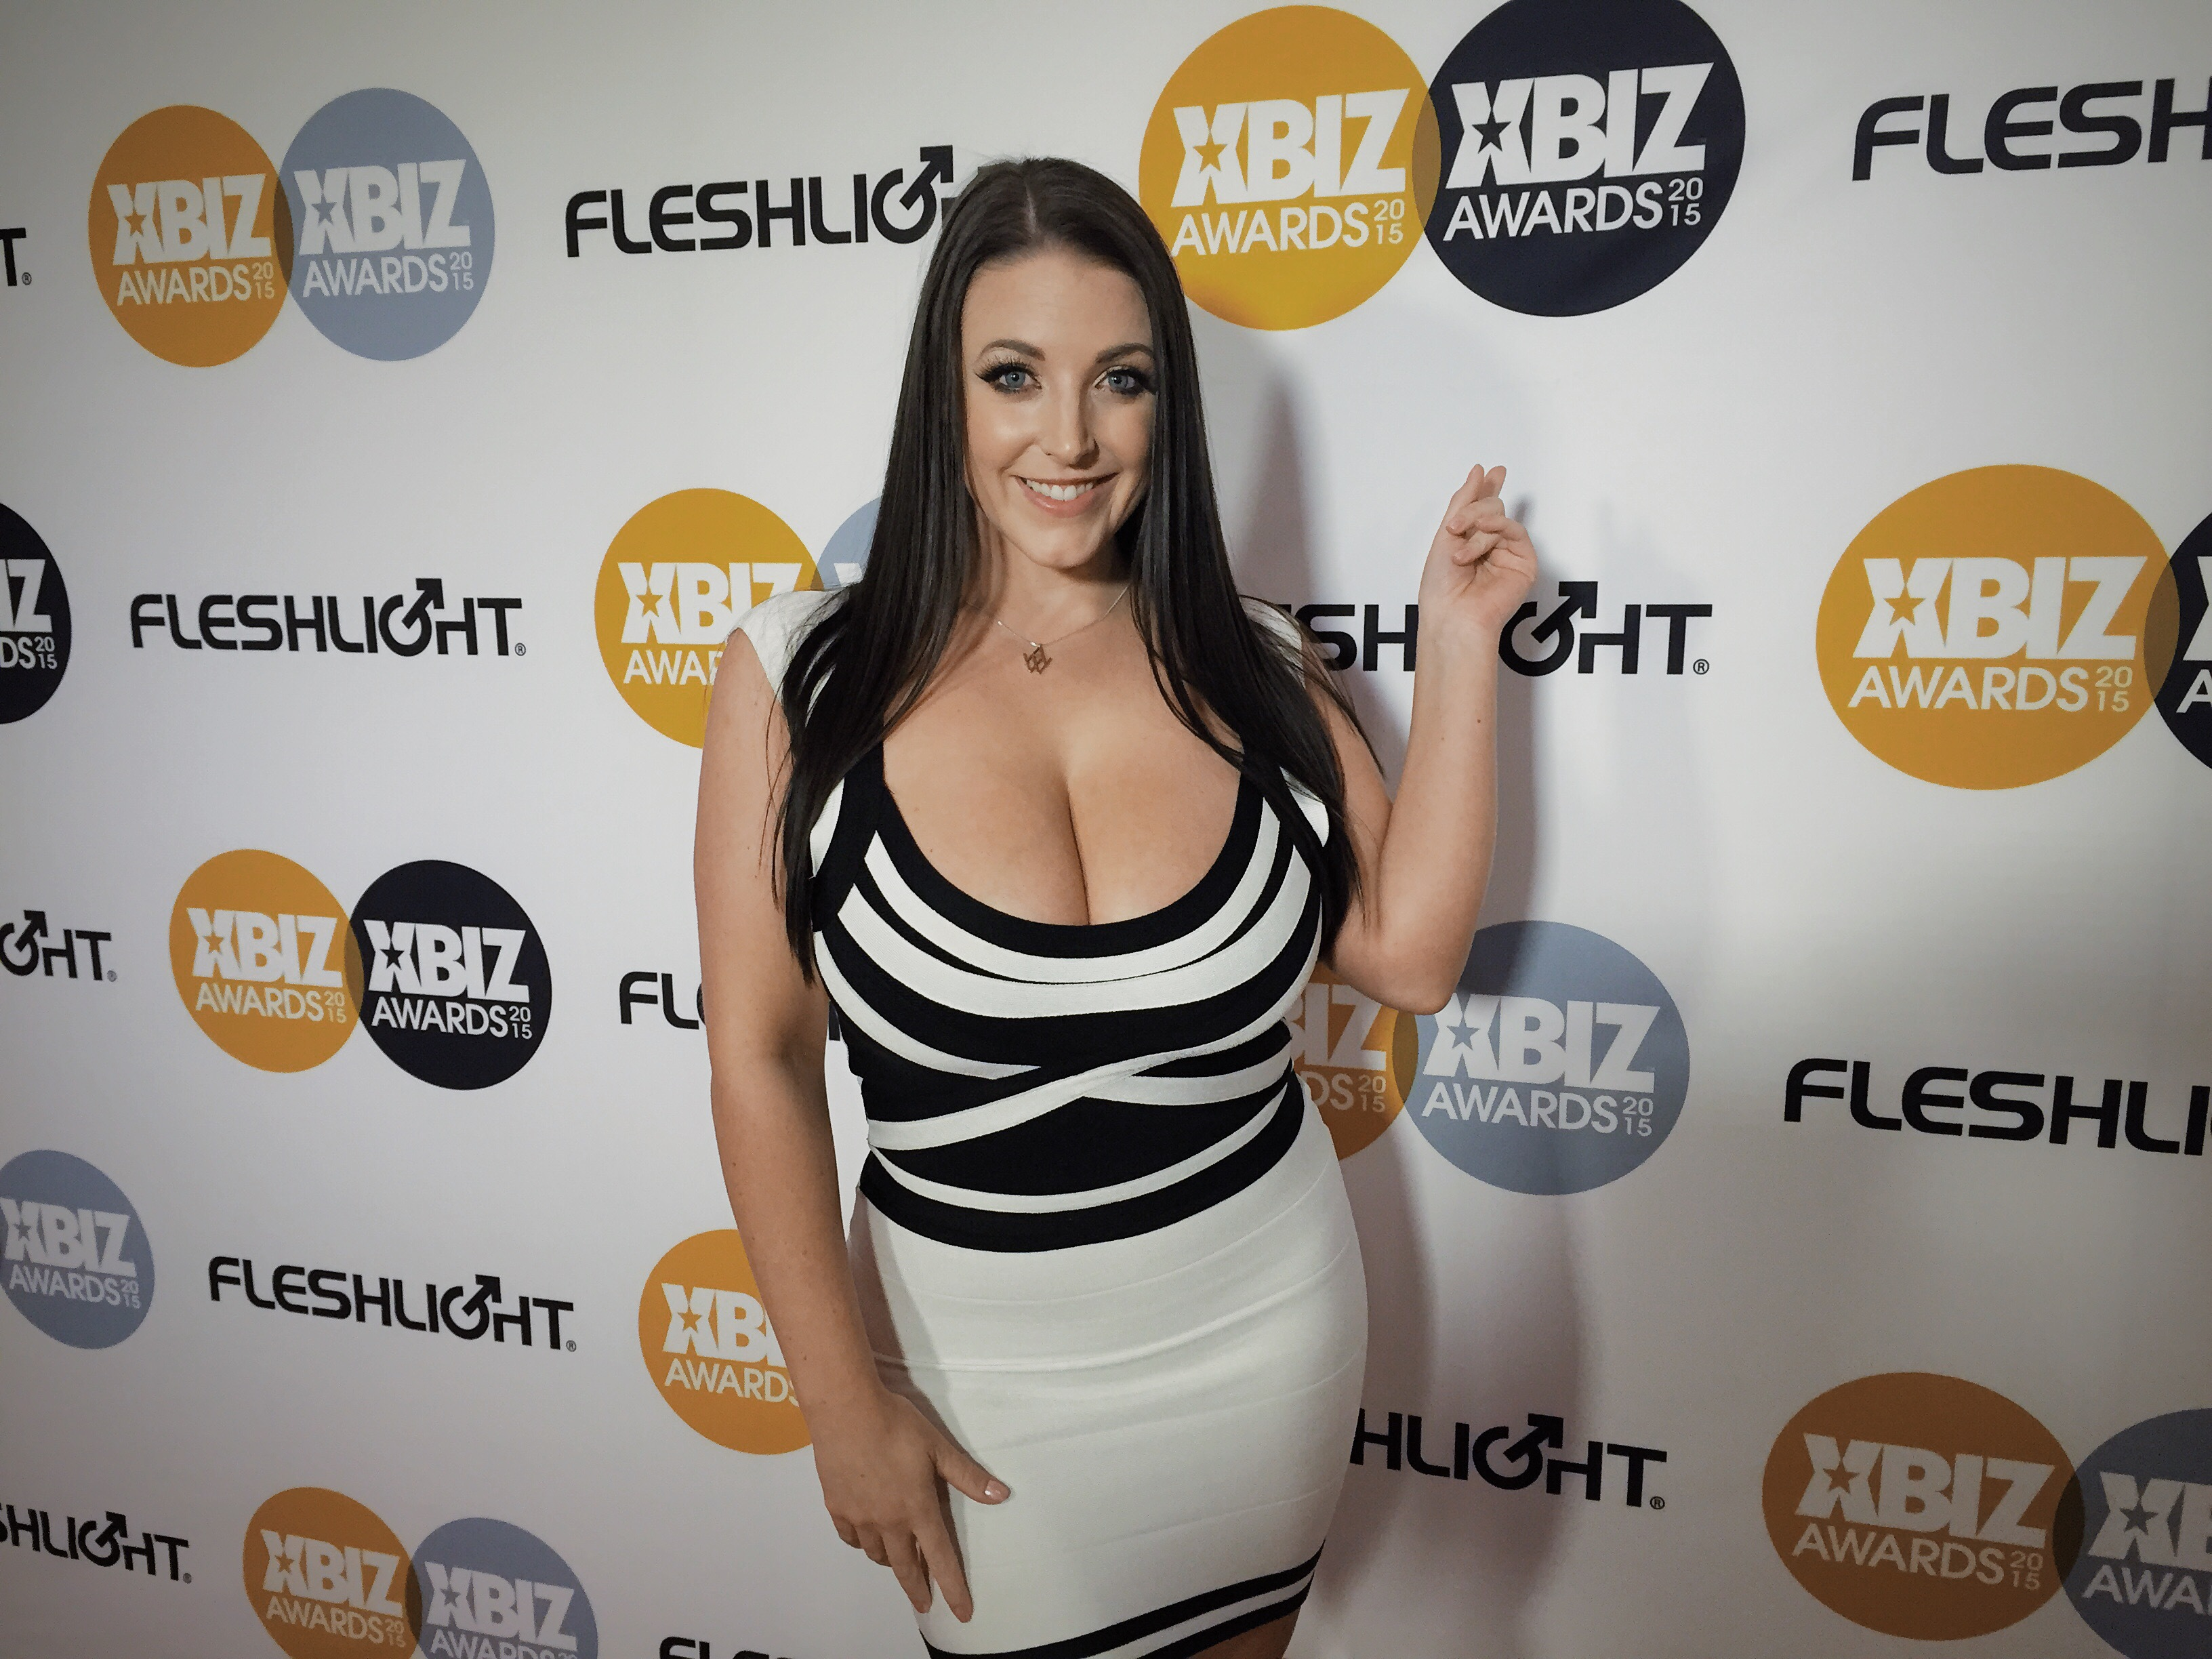 angela white hd